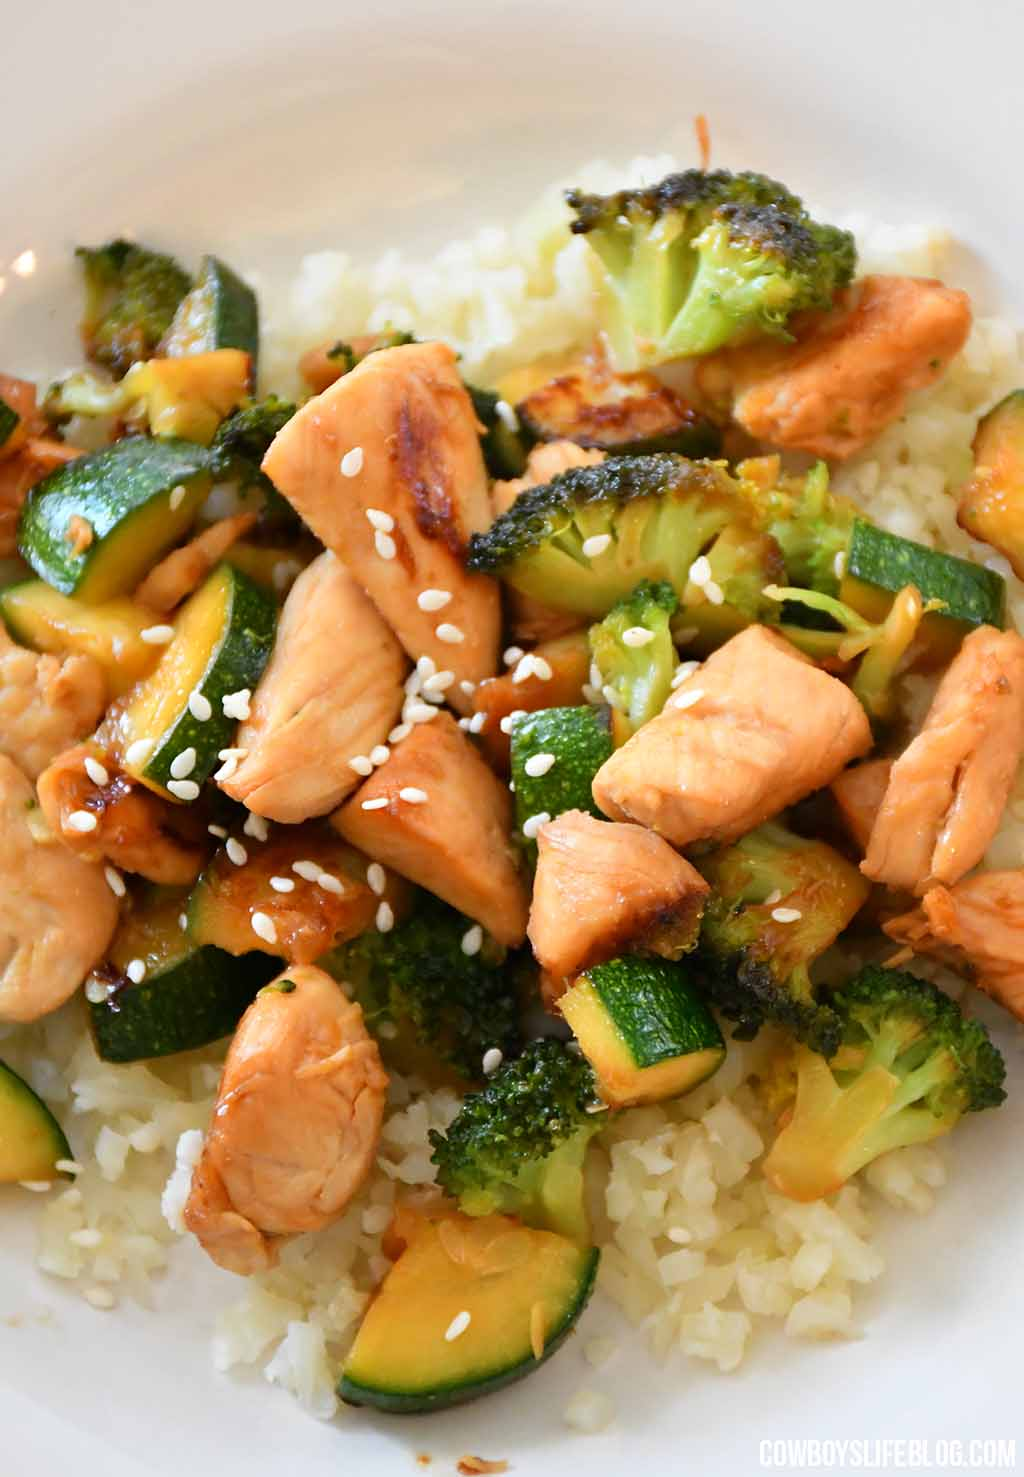 How to make low carb Chicken Stir Fry